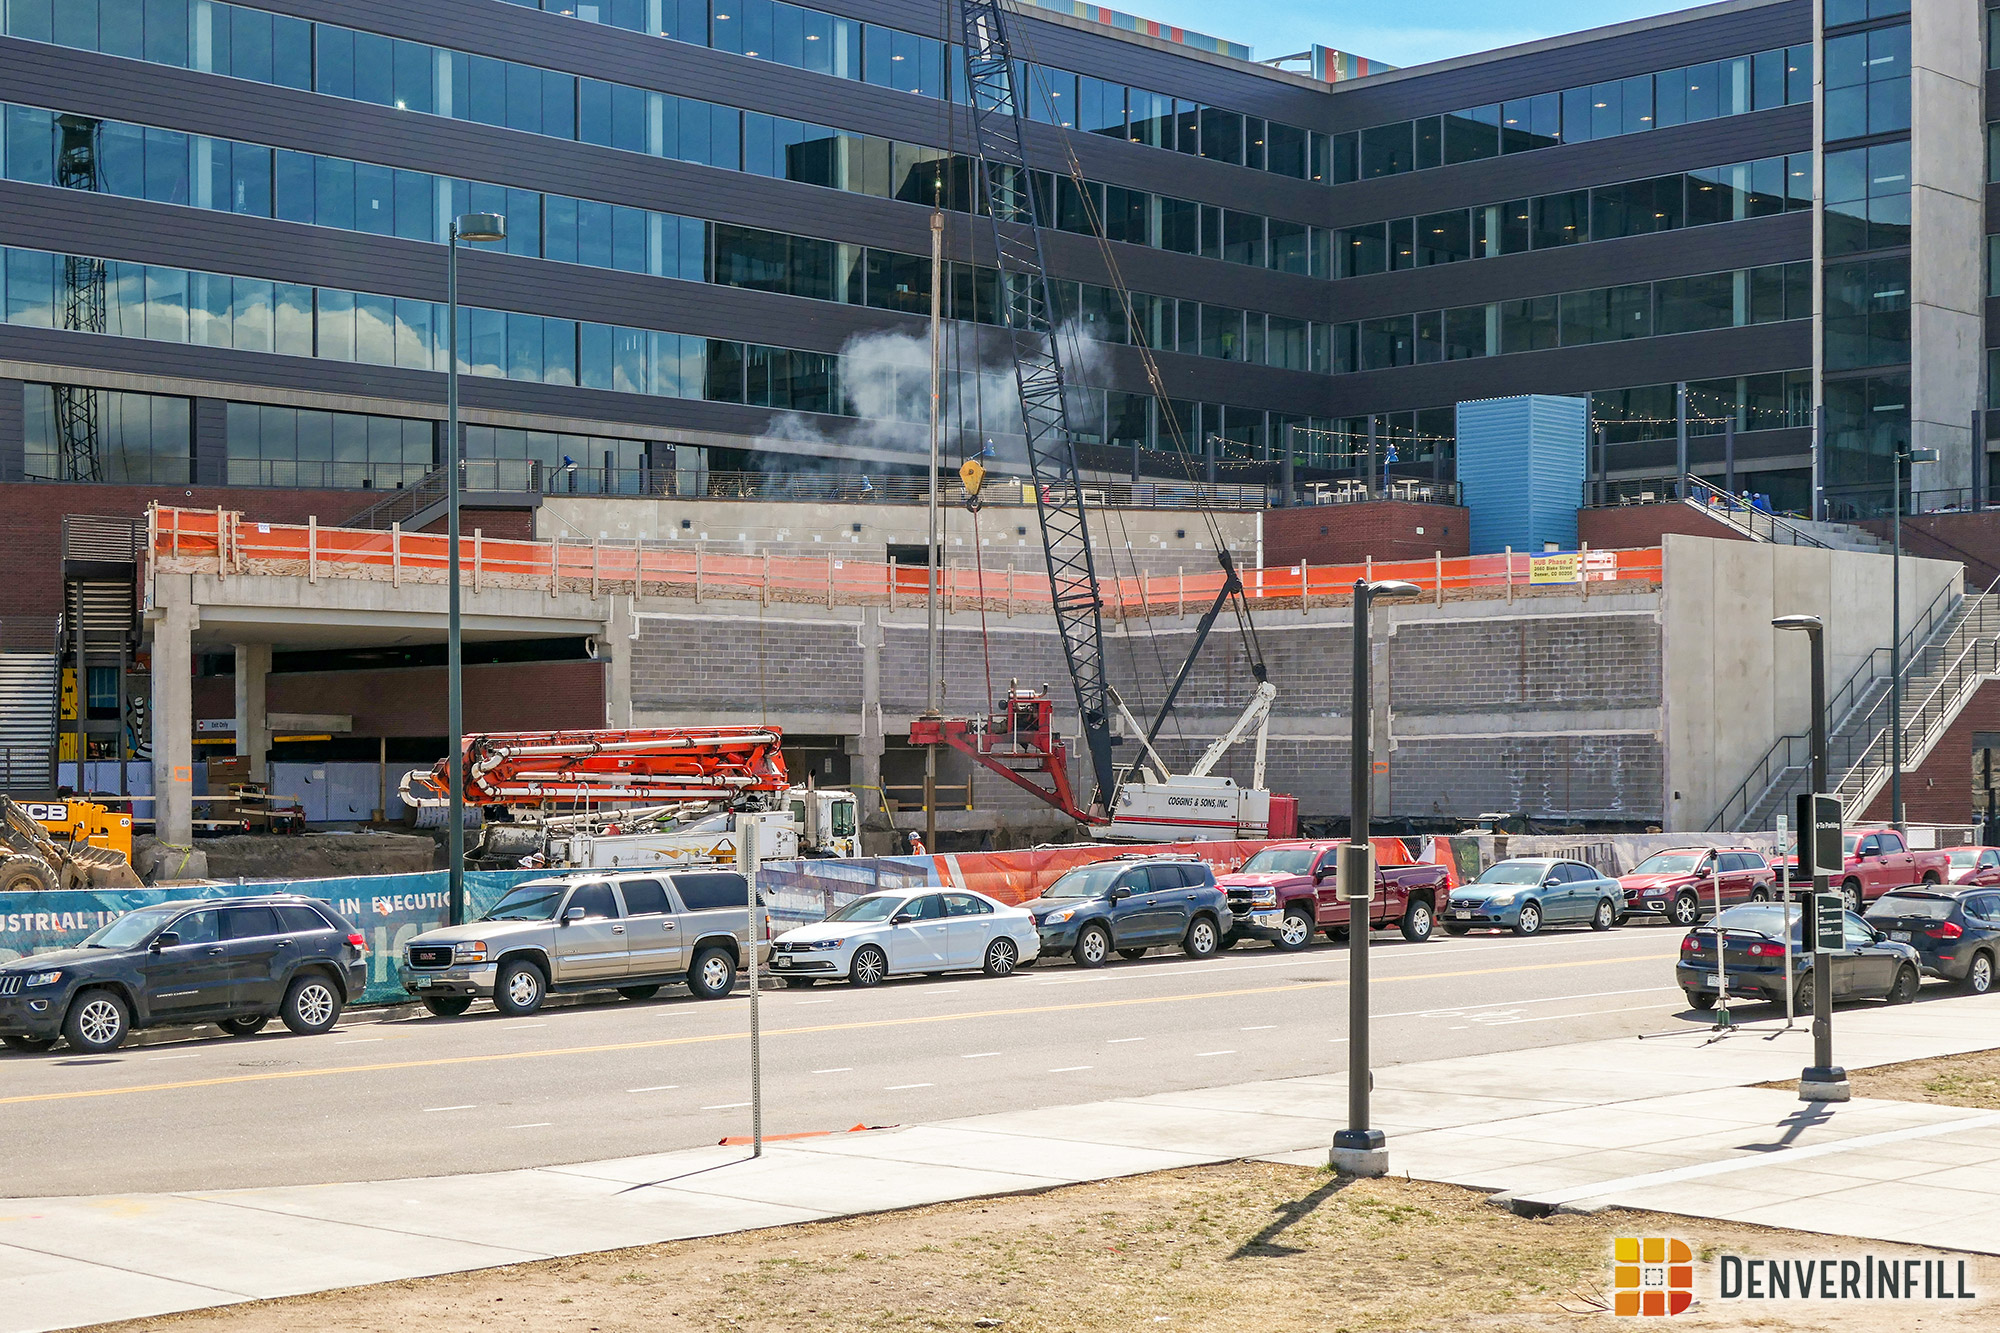 Construction of HUB North from the 38th and Blake transit station